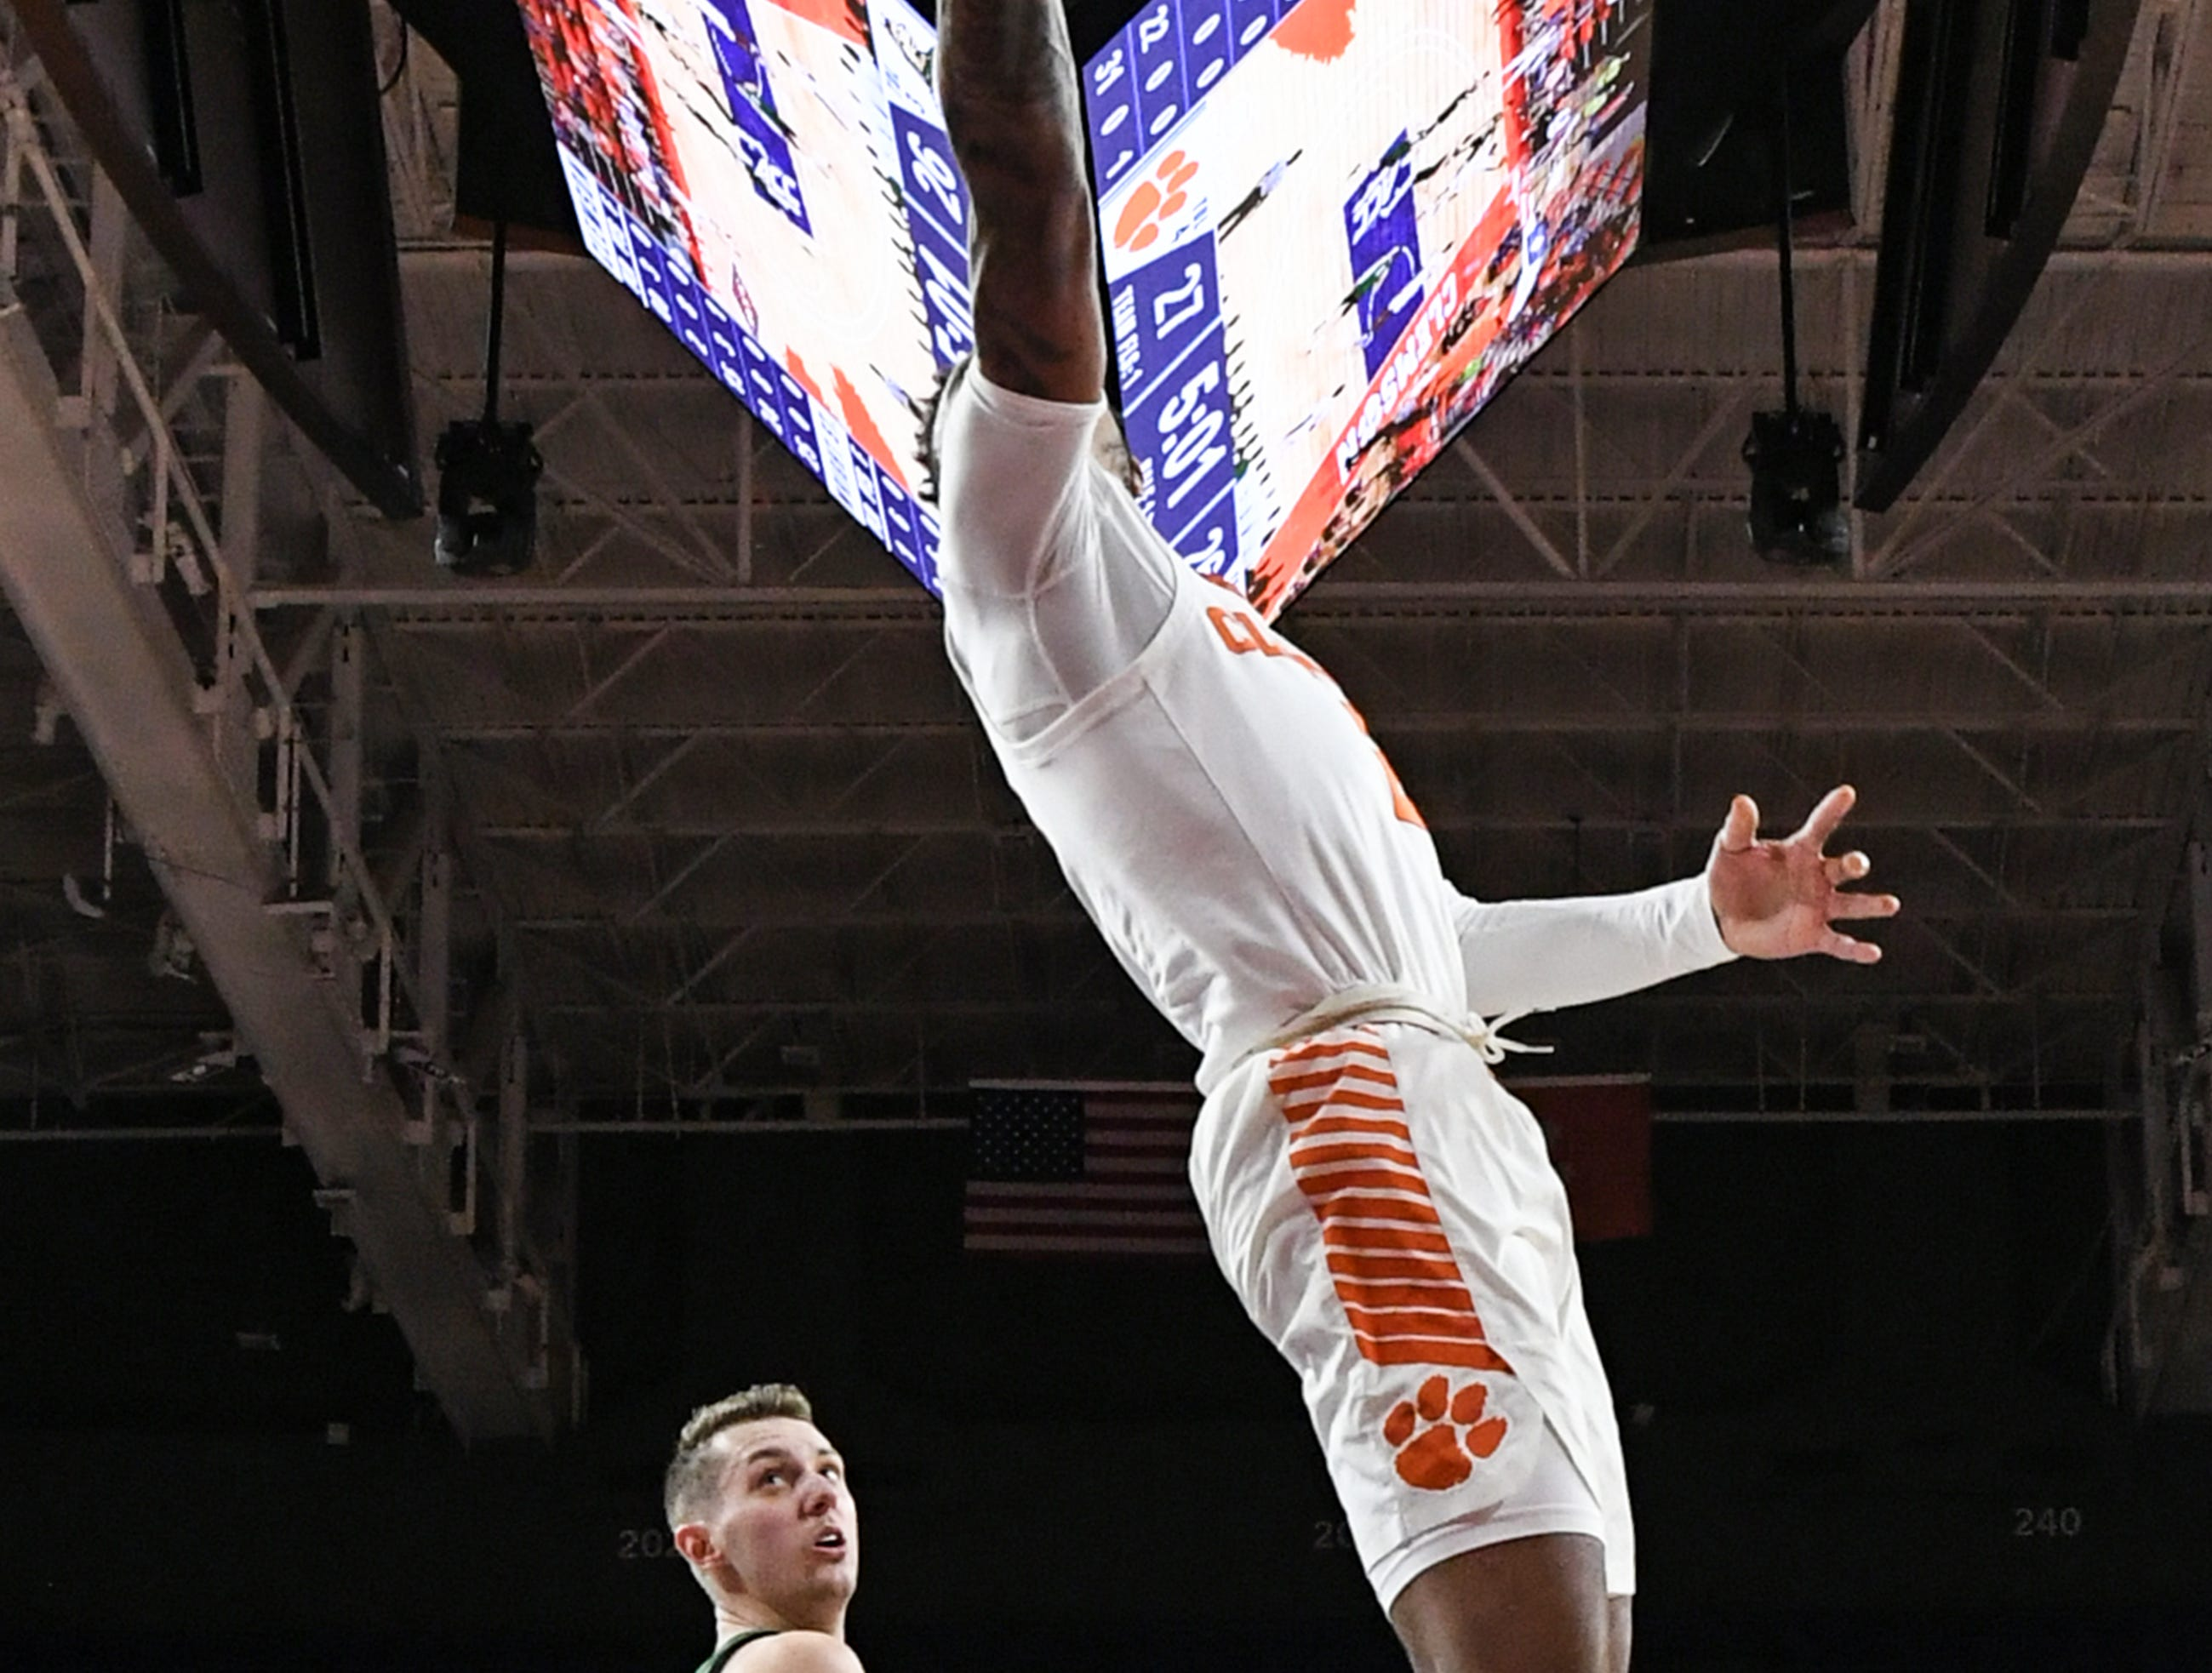 Clemson guard Marcquise Reed (2) shoots during the first half of the NIT at Littlejohn Coliseum in Clemson Tuesday, March 19, 2019.